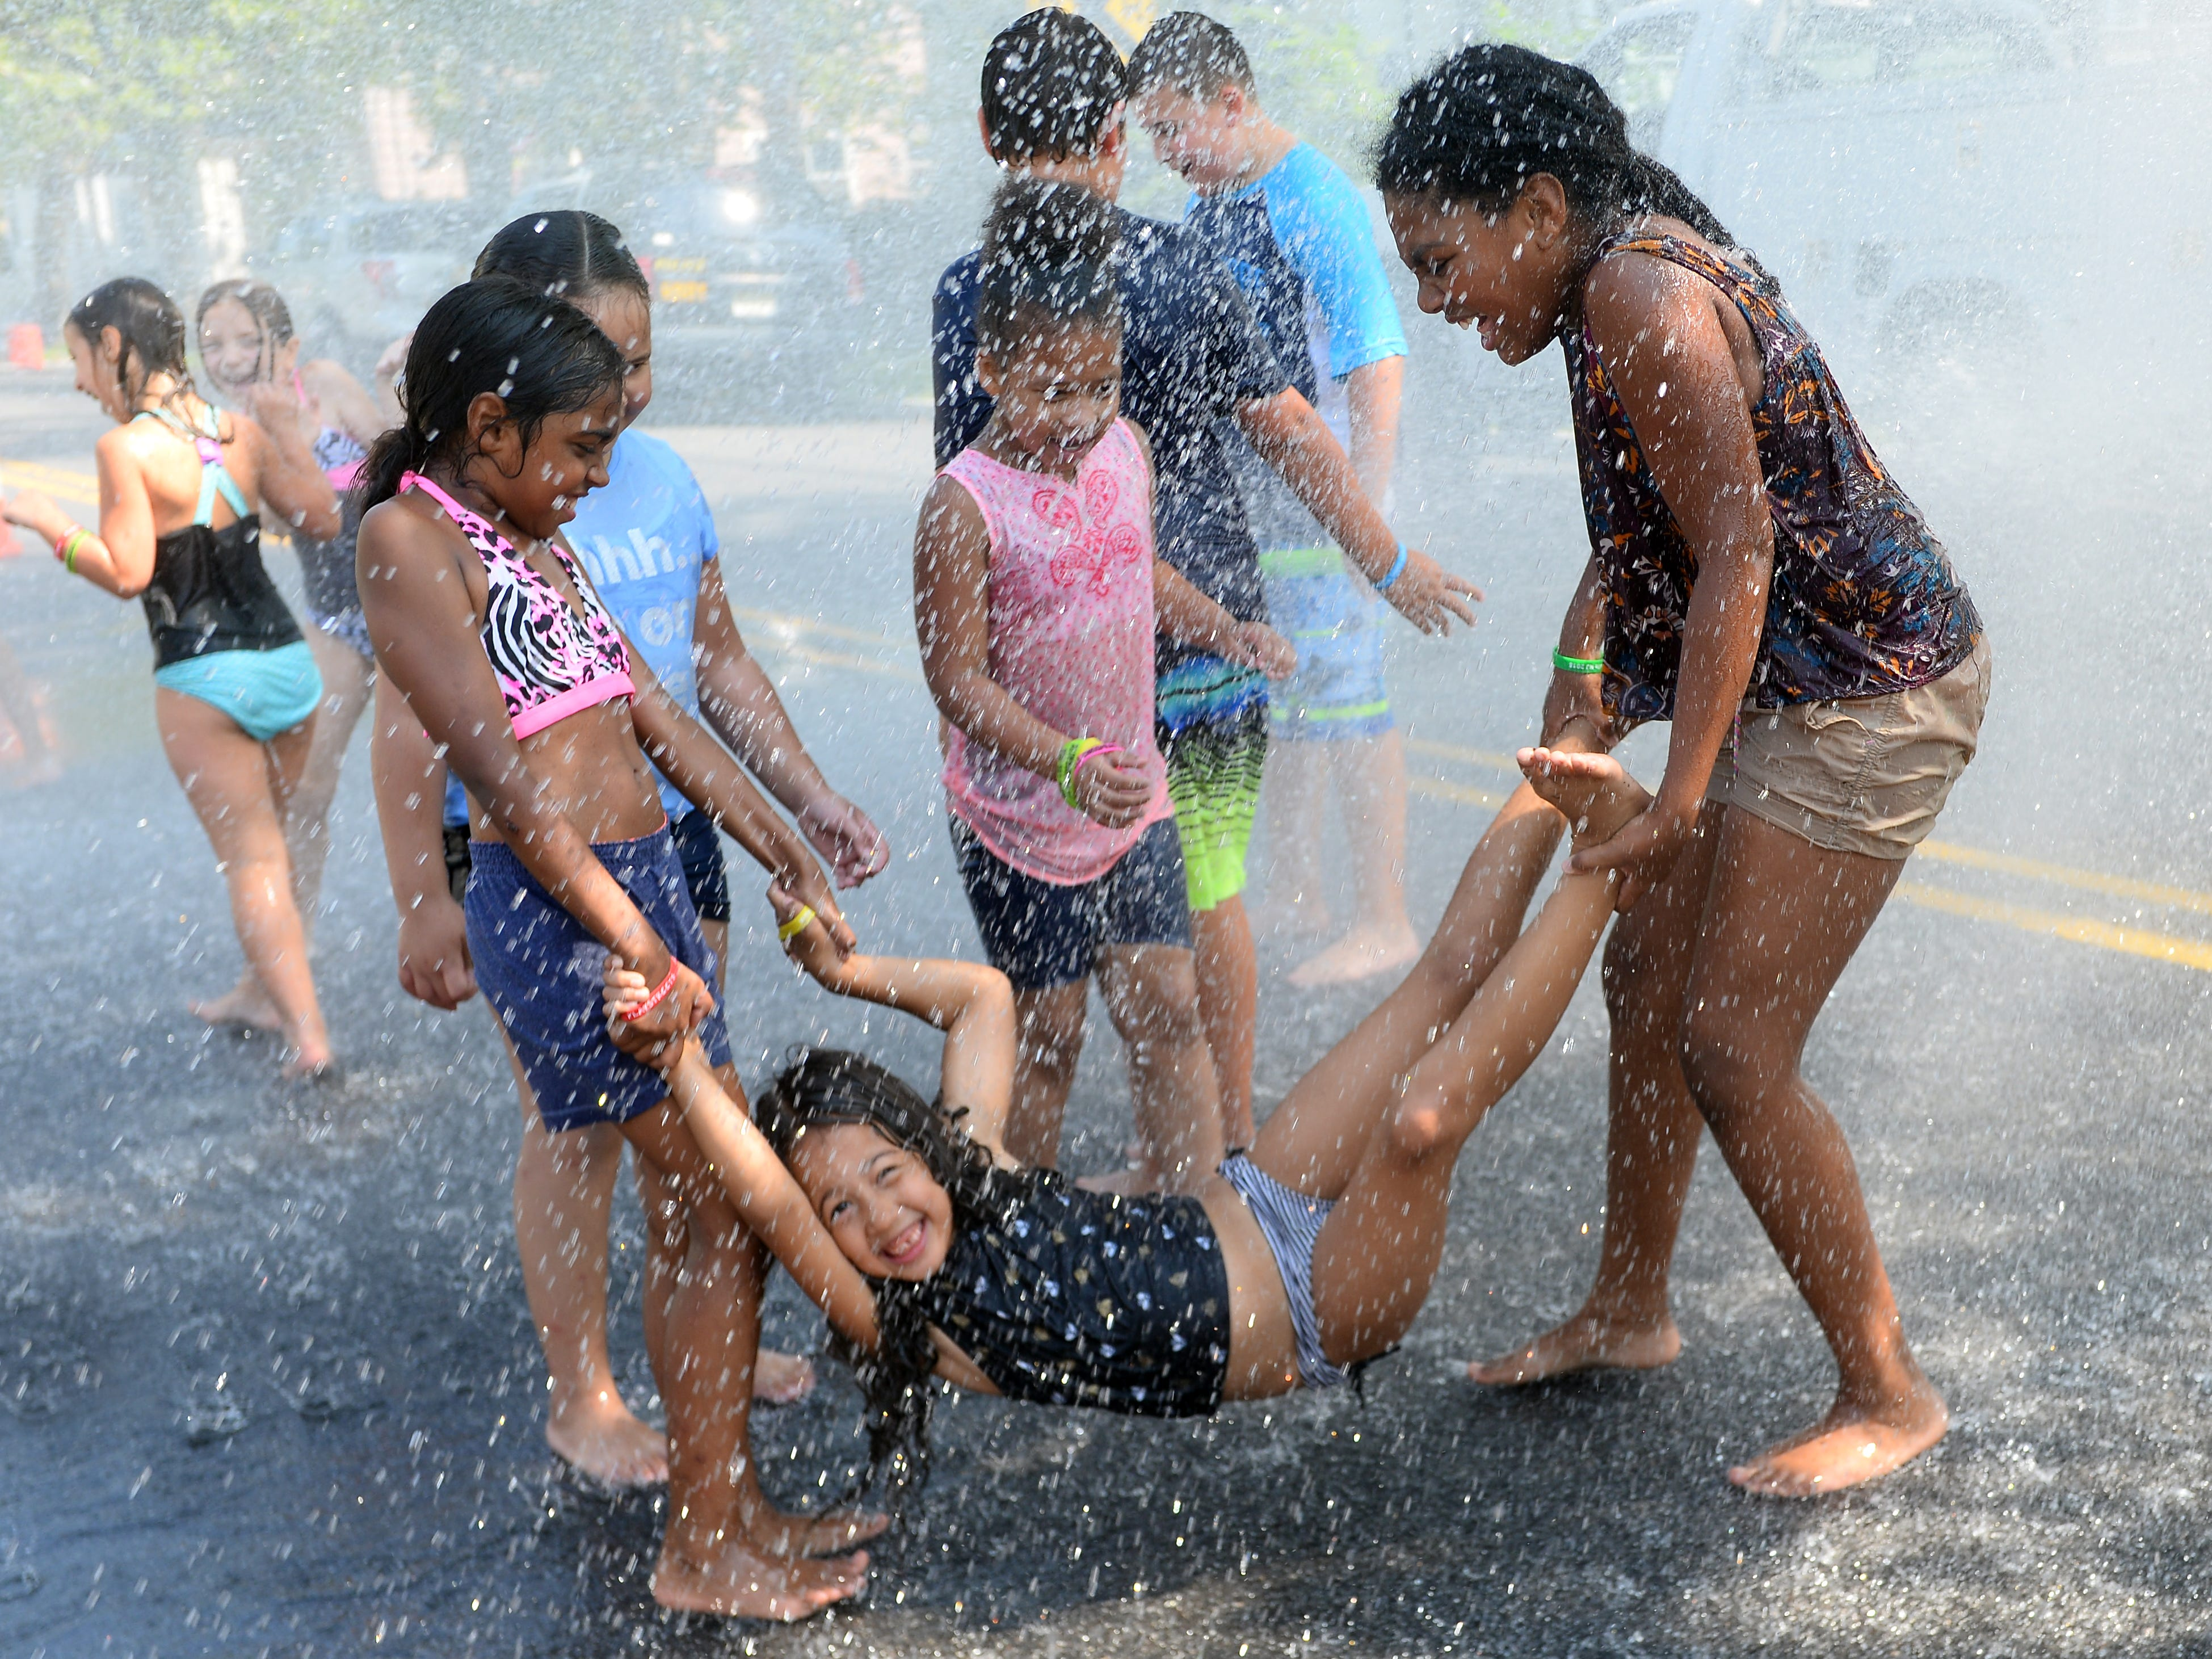 Children play in a hydrant opened by the city during Millville's free Play Streets event on Wednesday, August 15.